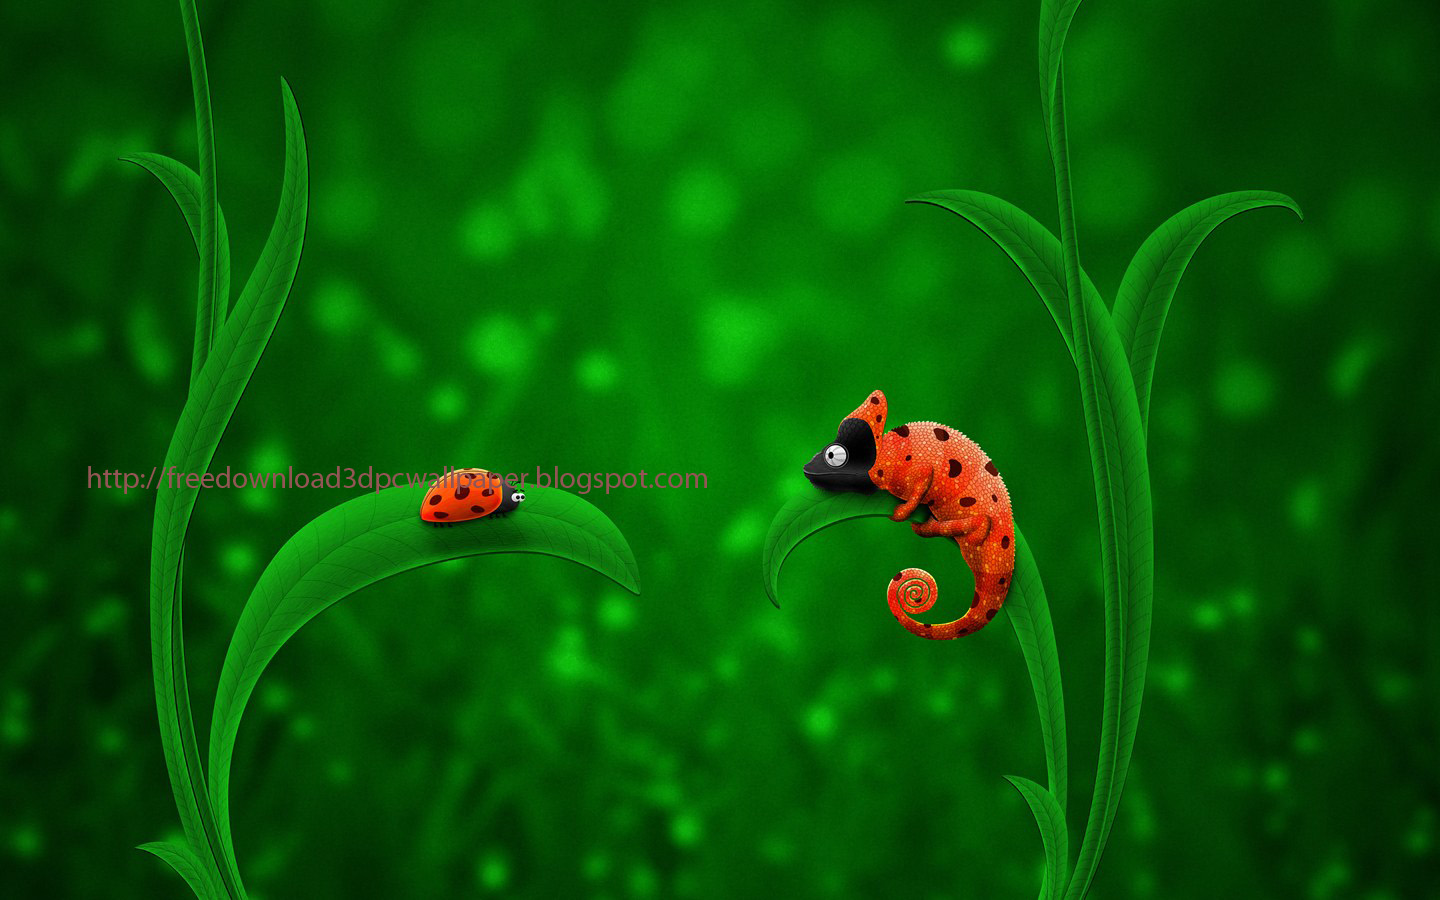 http://2.bp.blogspot.com/-QtTs_qyh3lU/Tls6ciOOuZI/AAAAAAAAACk/8ZIygcQz6ps/s1600/bug+on+green+grass+3D+CG+Desktop+Wallpapers.jpg